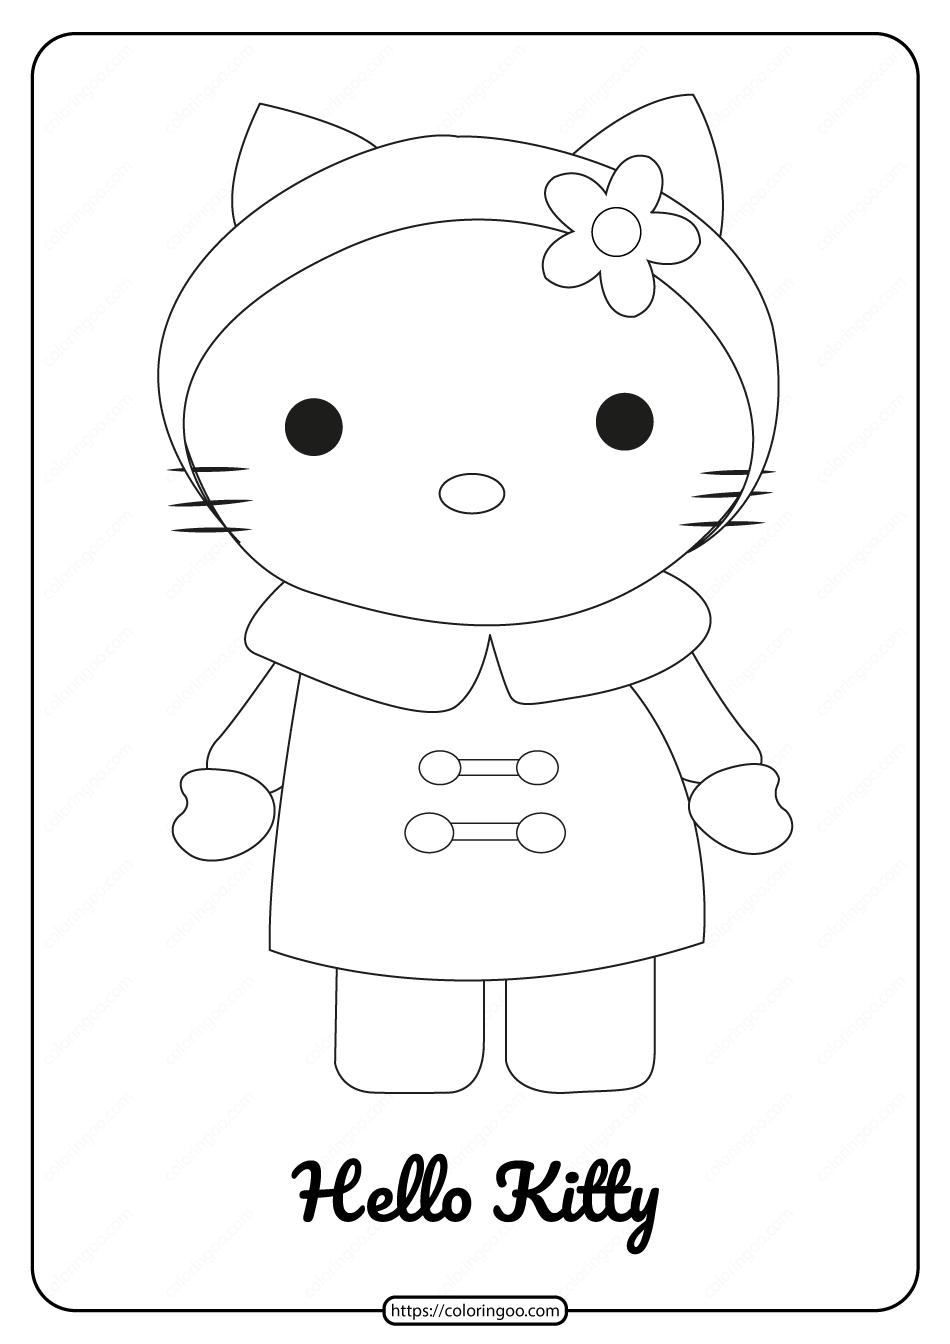 Printable Hello Kitty Wearing a Raincoat Coloring Page